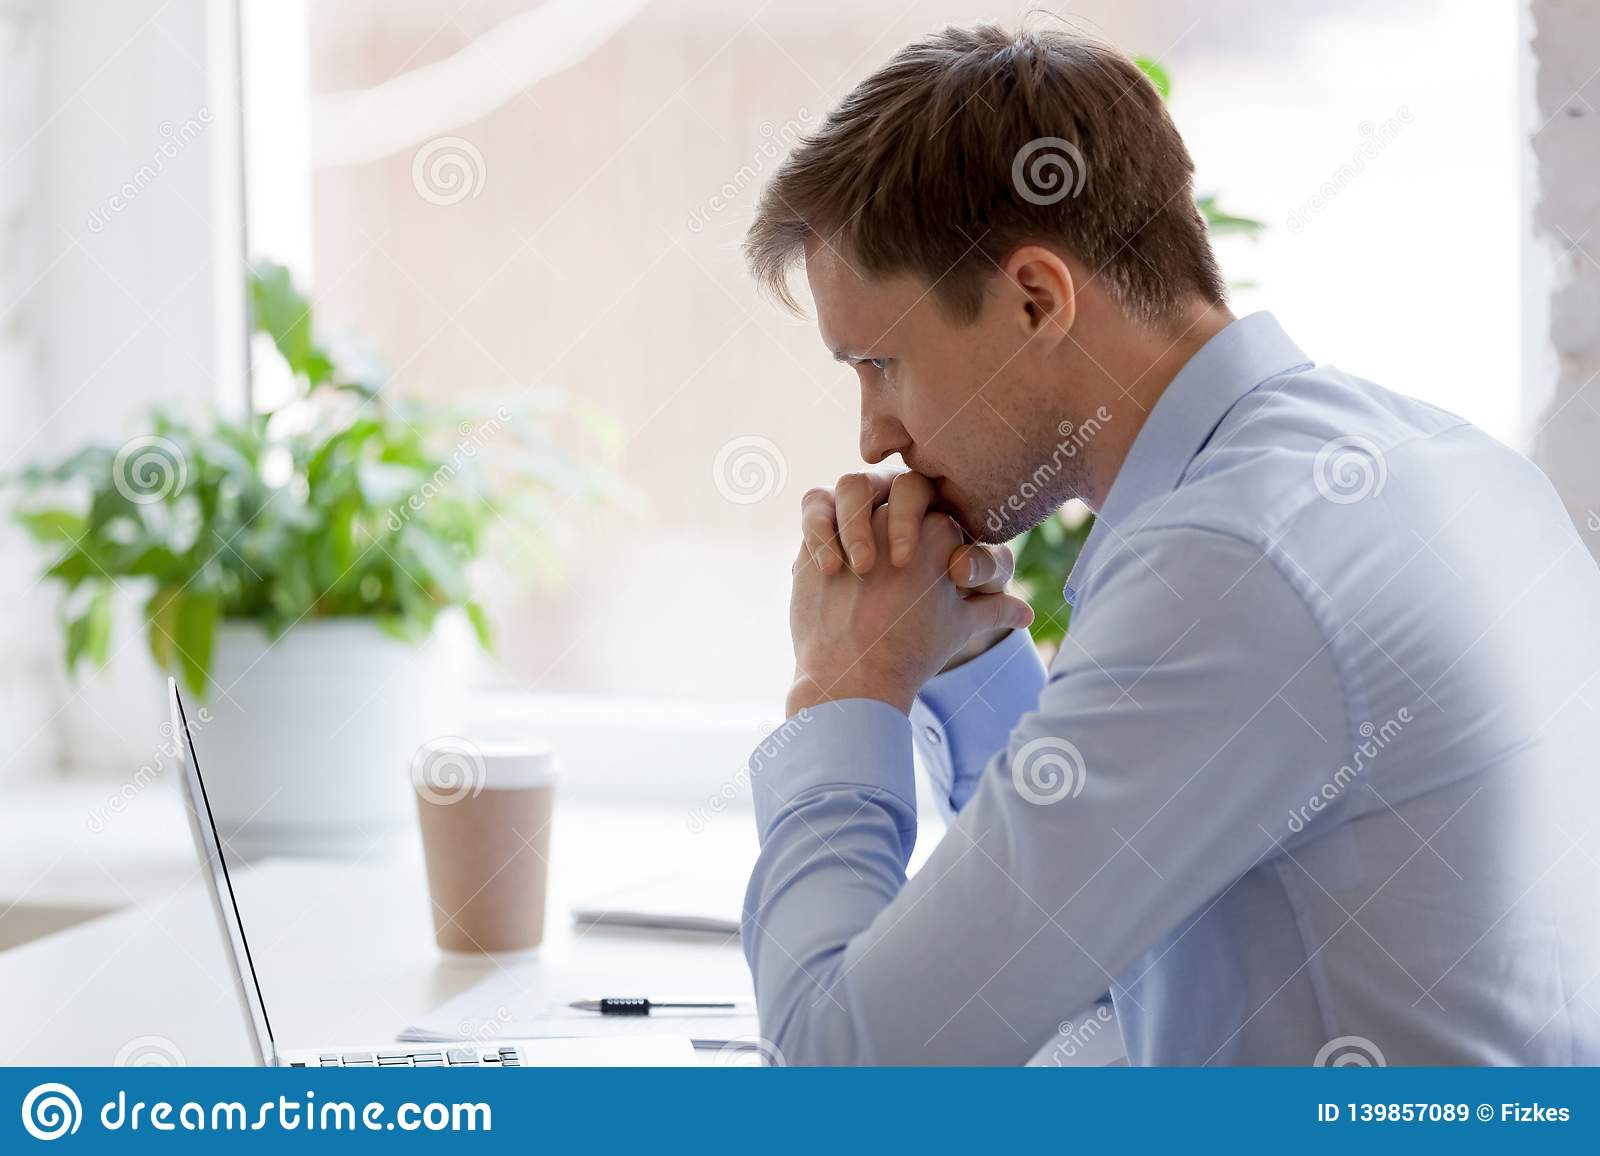 Focused businessman sitting in office working and thinking